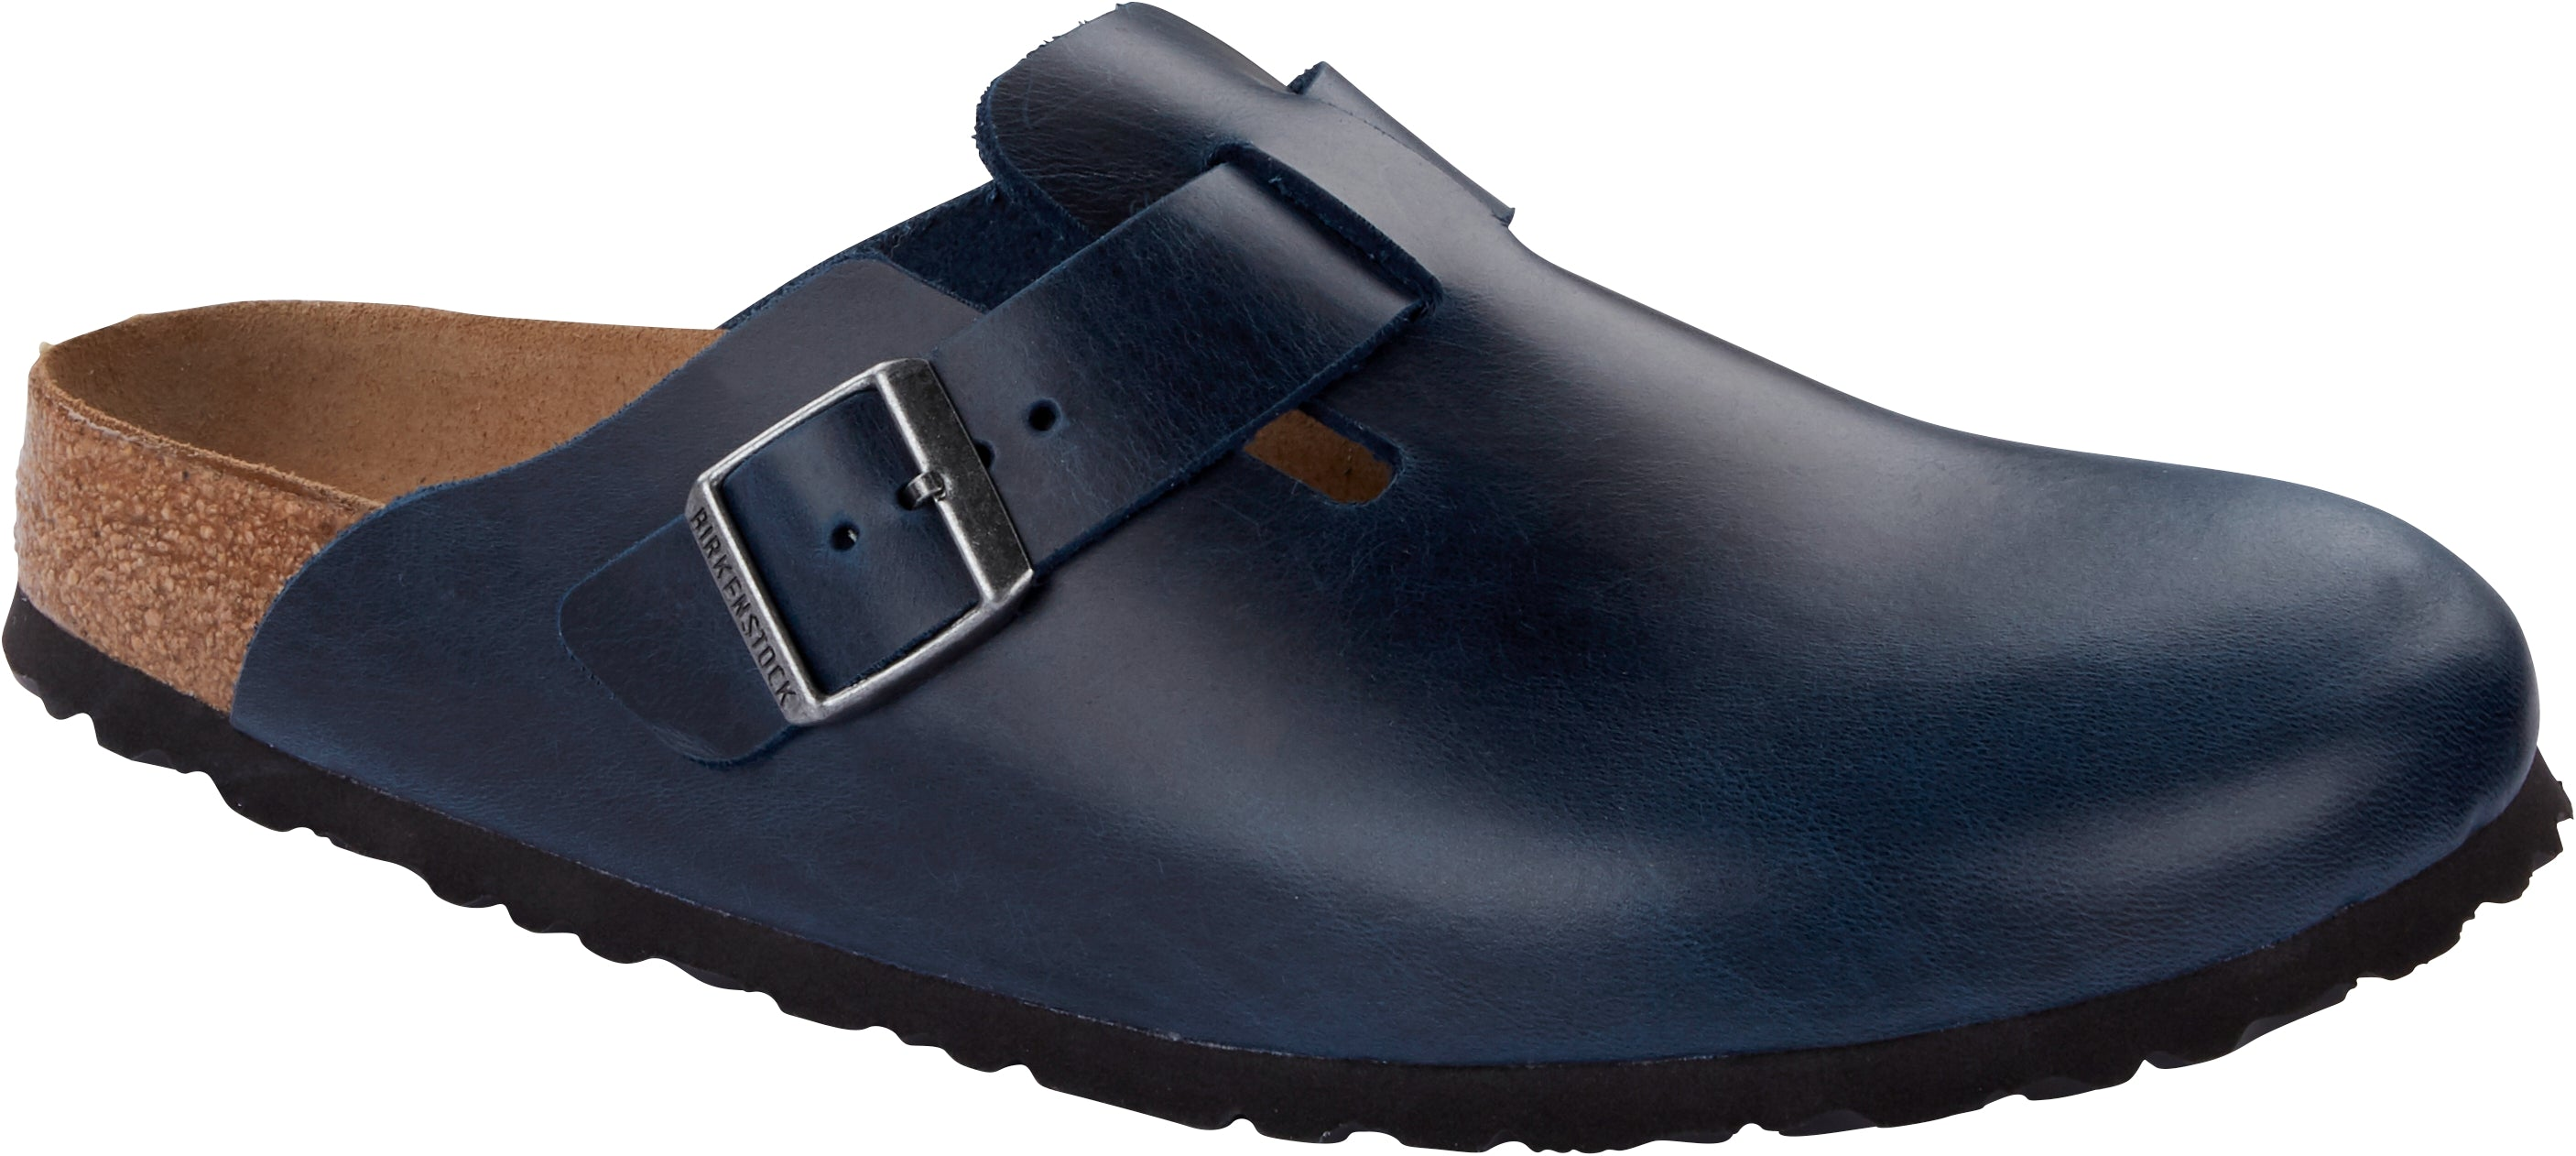 bfcb0b052714 Men s   Birkenstock   Clogs – My Birkenstock Shop